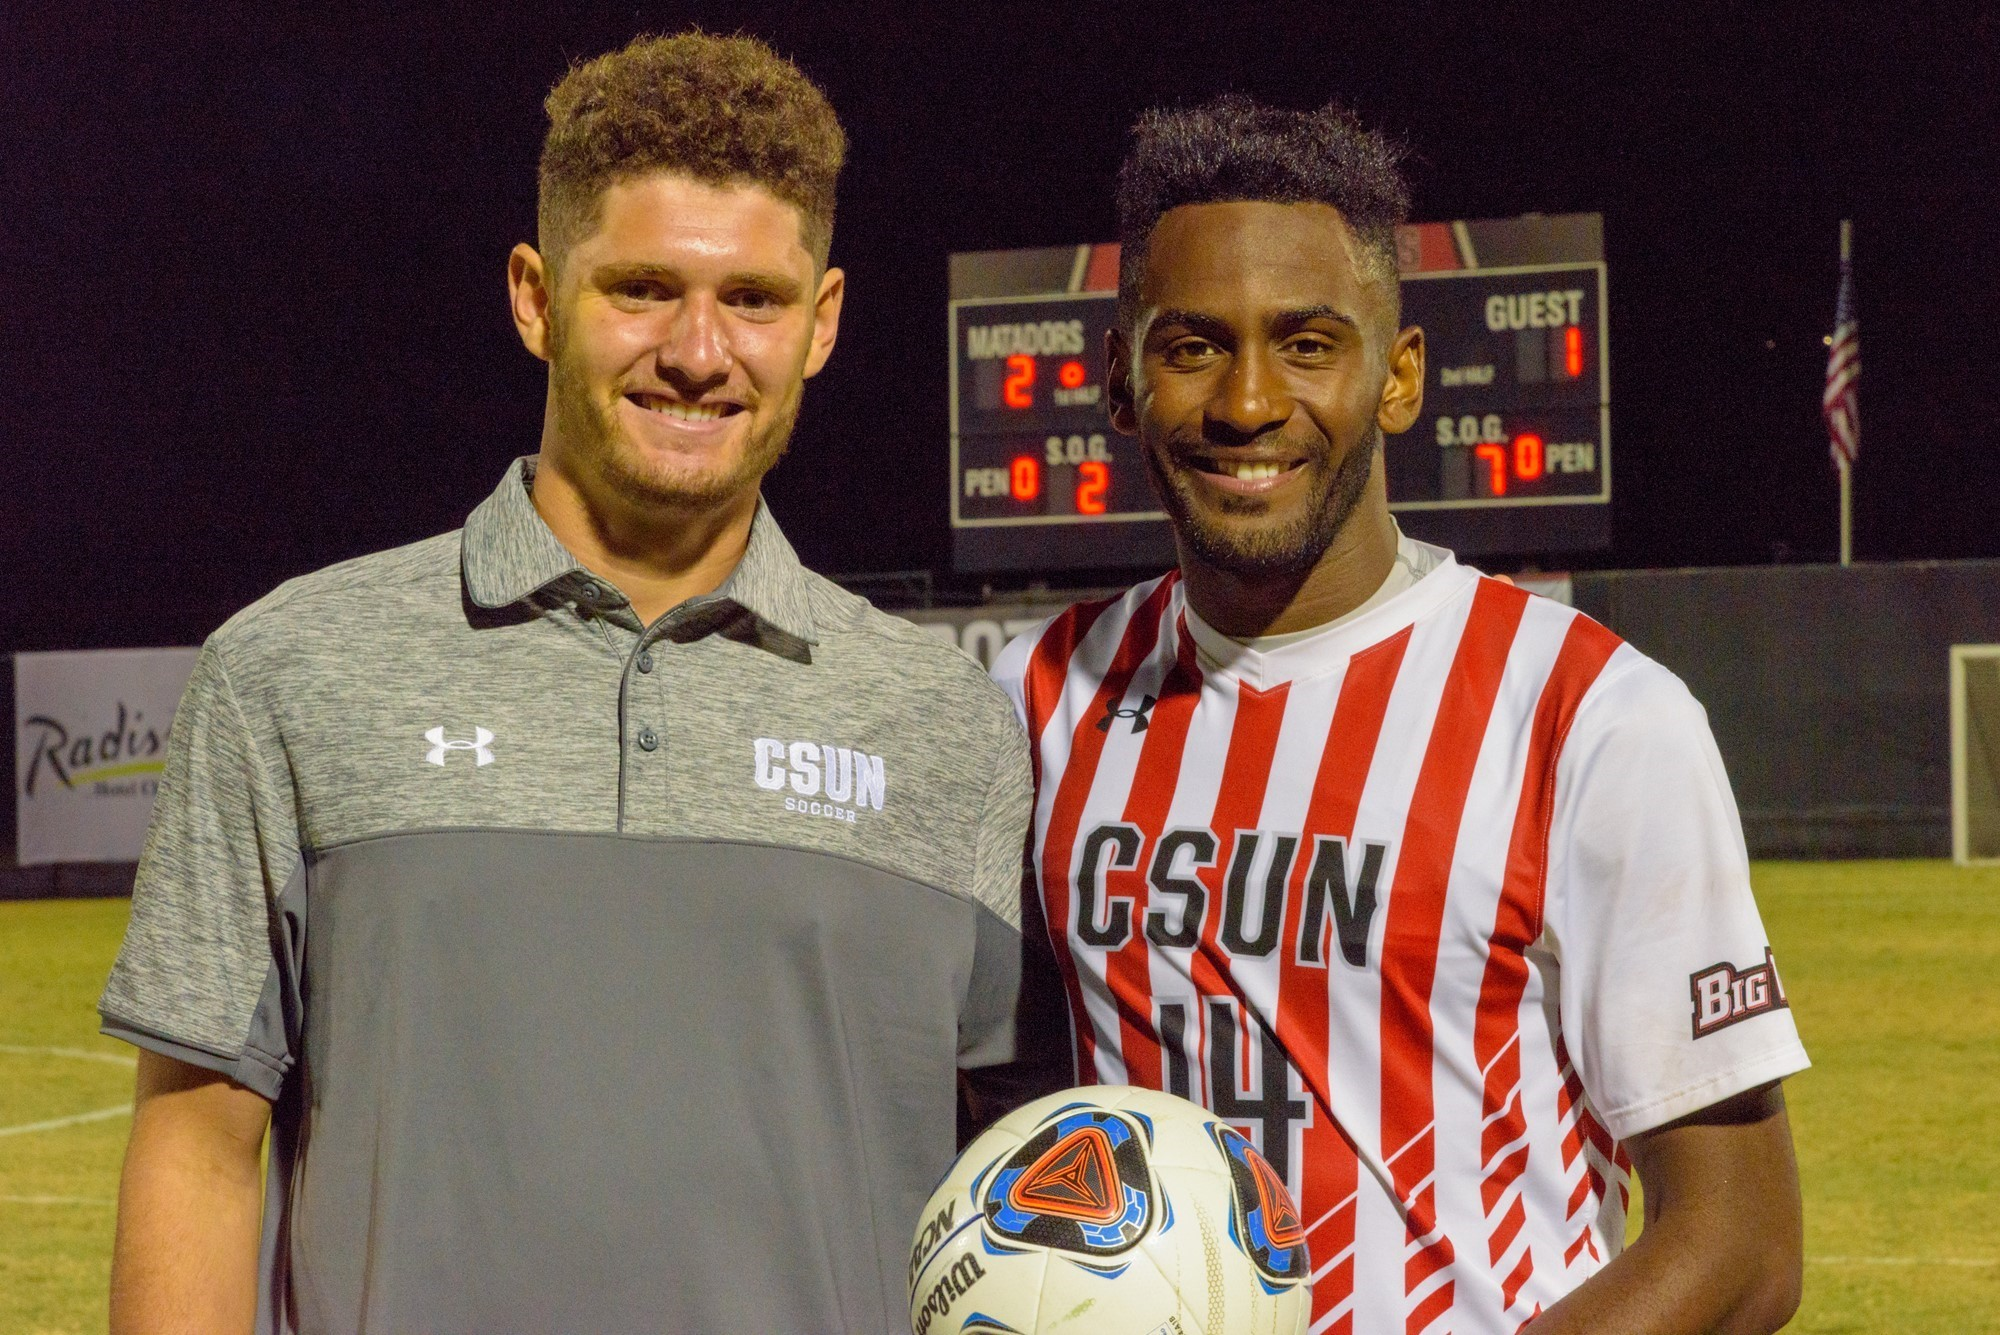 Globe-Trotting Grinde Brothers Find Home at CSUN